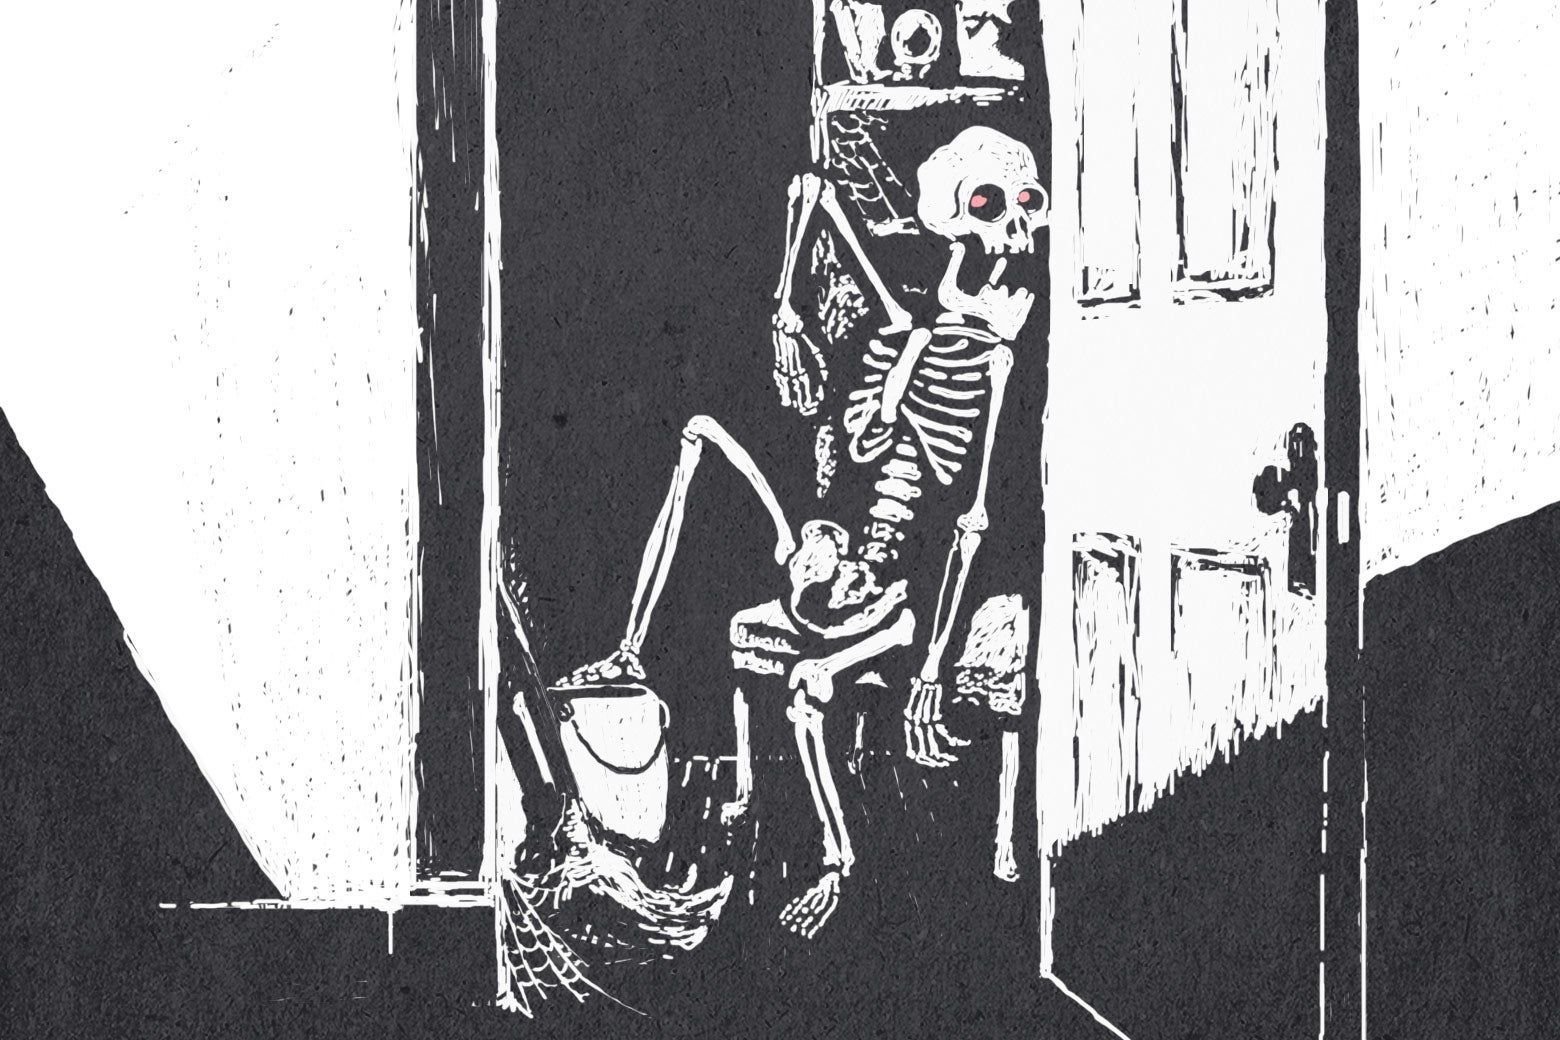 A woodcut drawing of a skeleton with red glowing eyes, lounging in a cobwebby closet next to a pail and mop